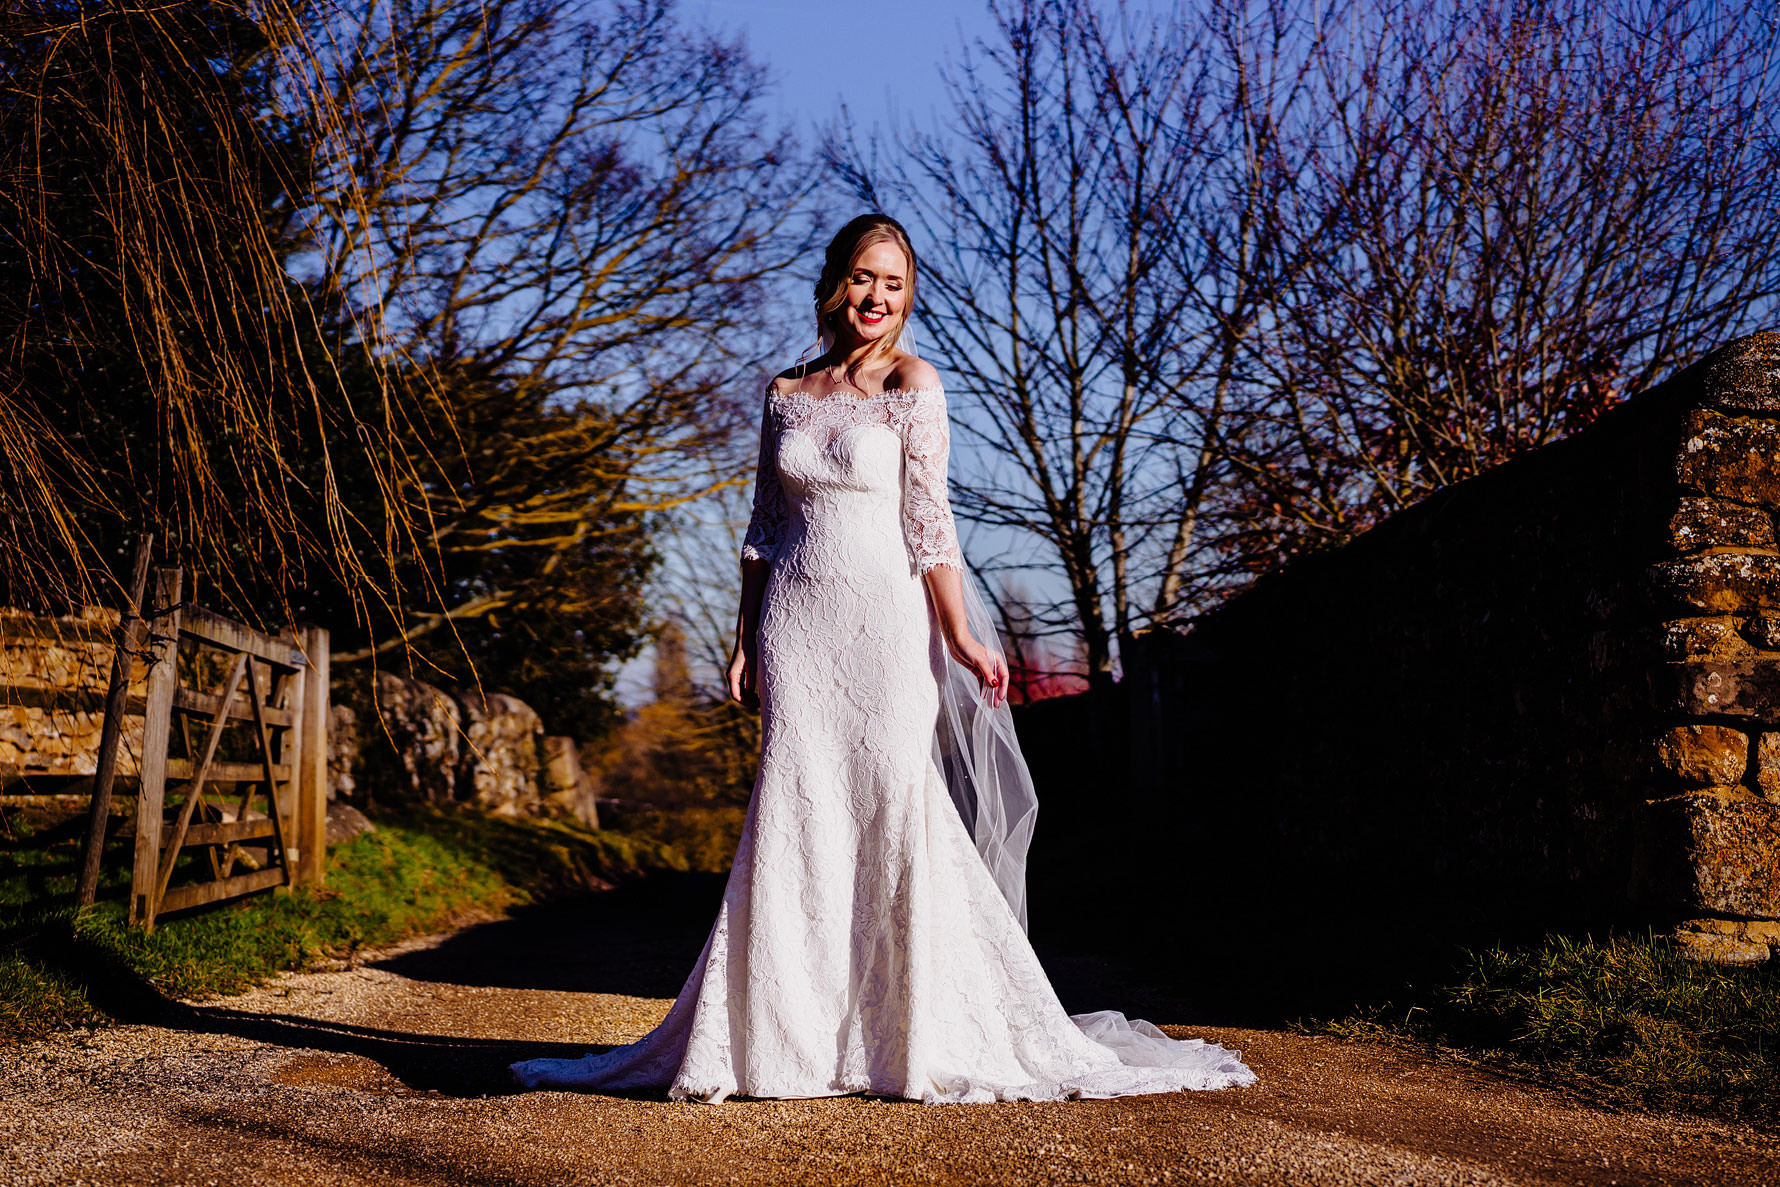 colour photography at dodford manor